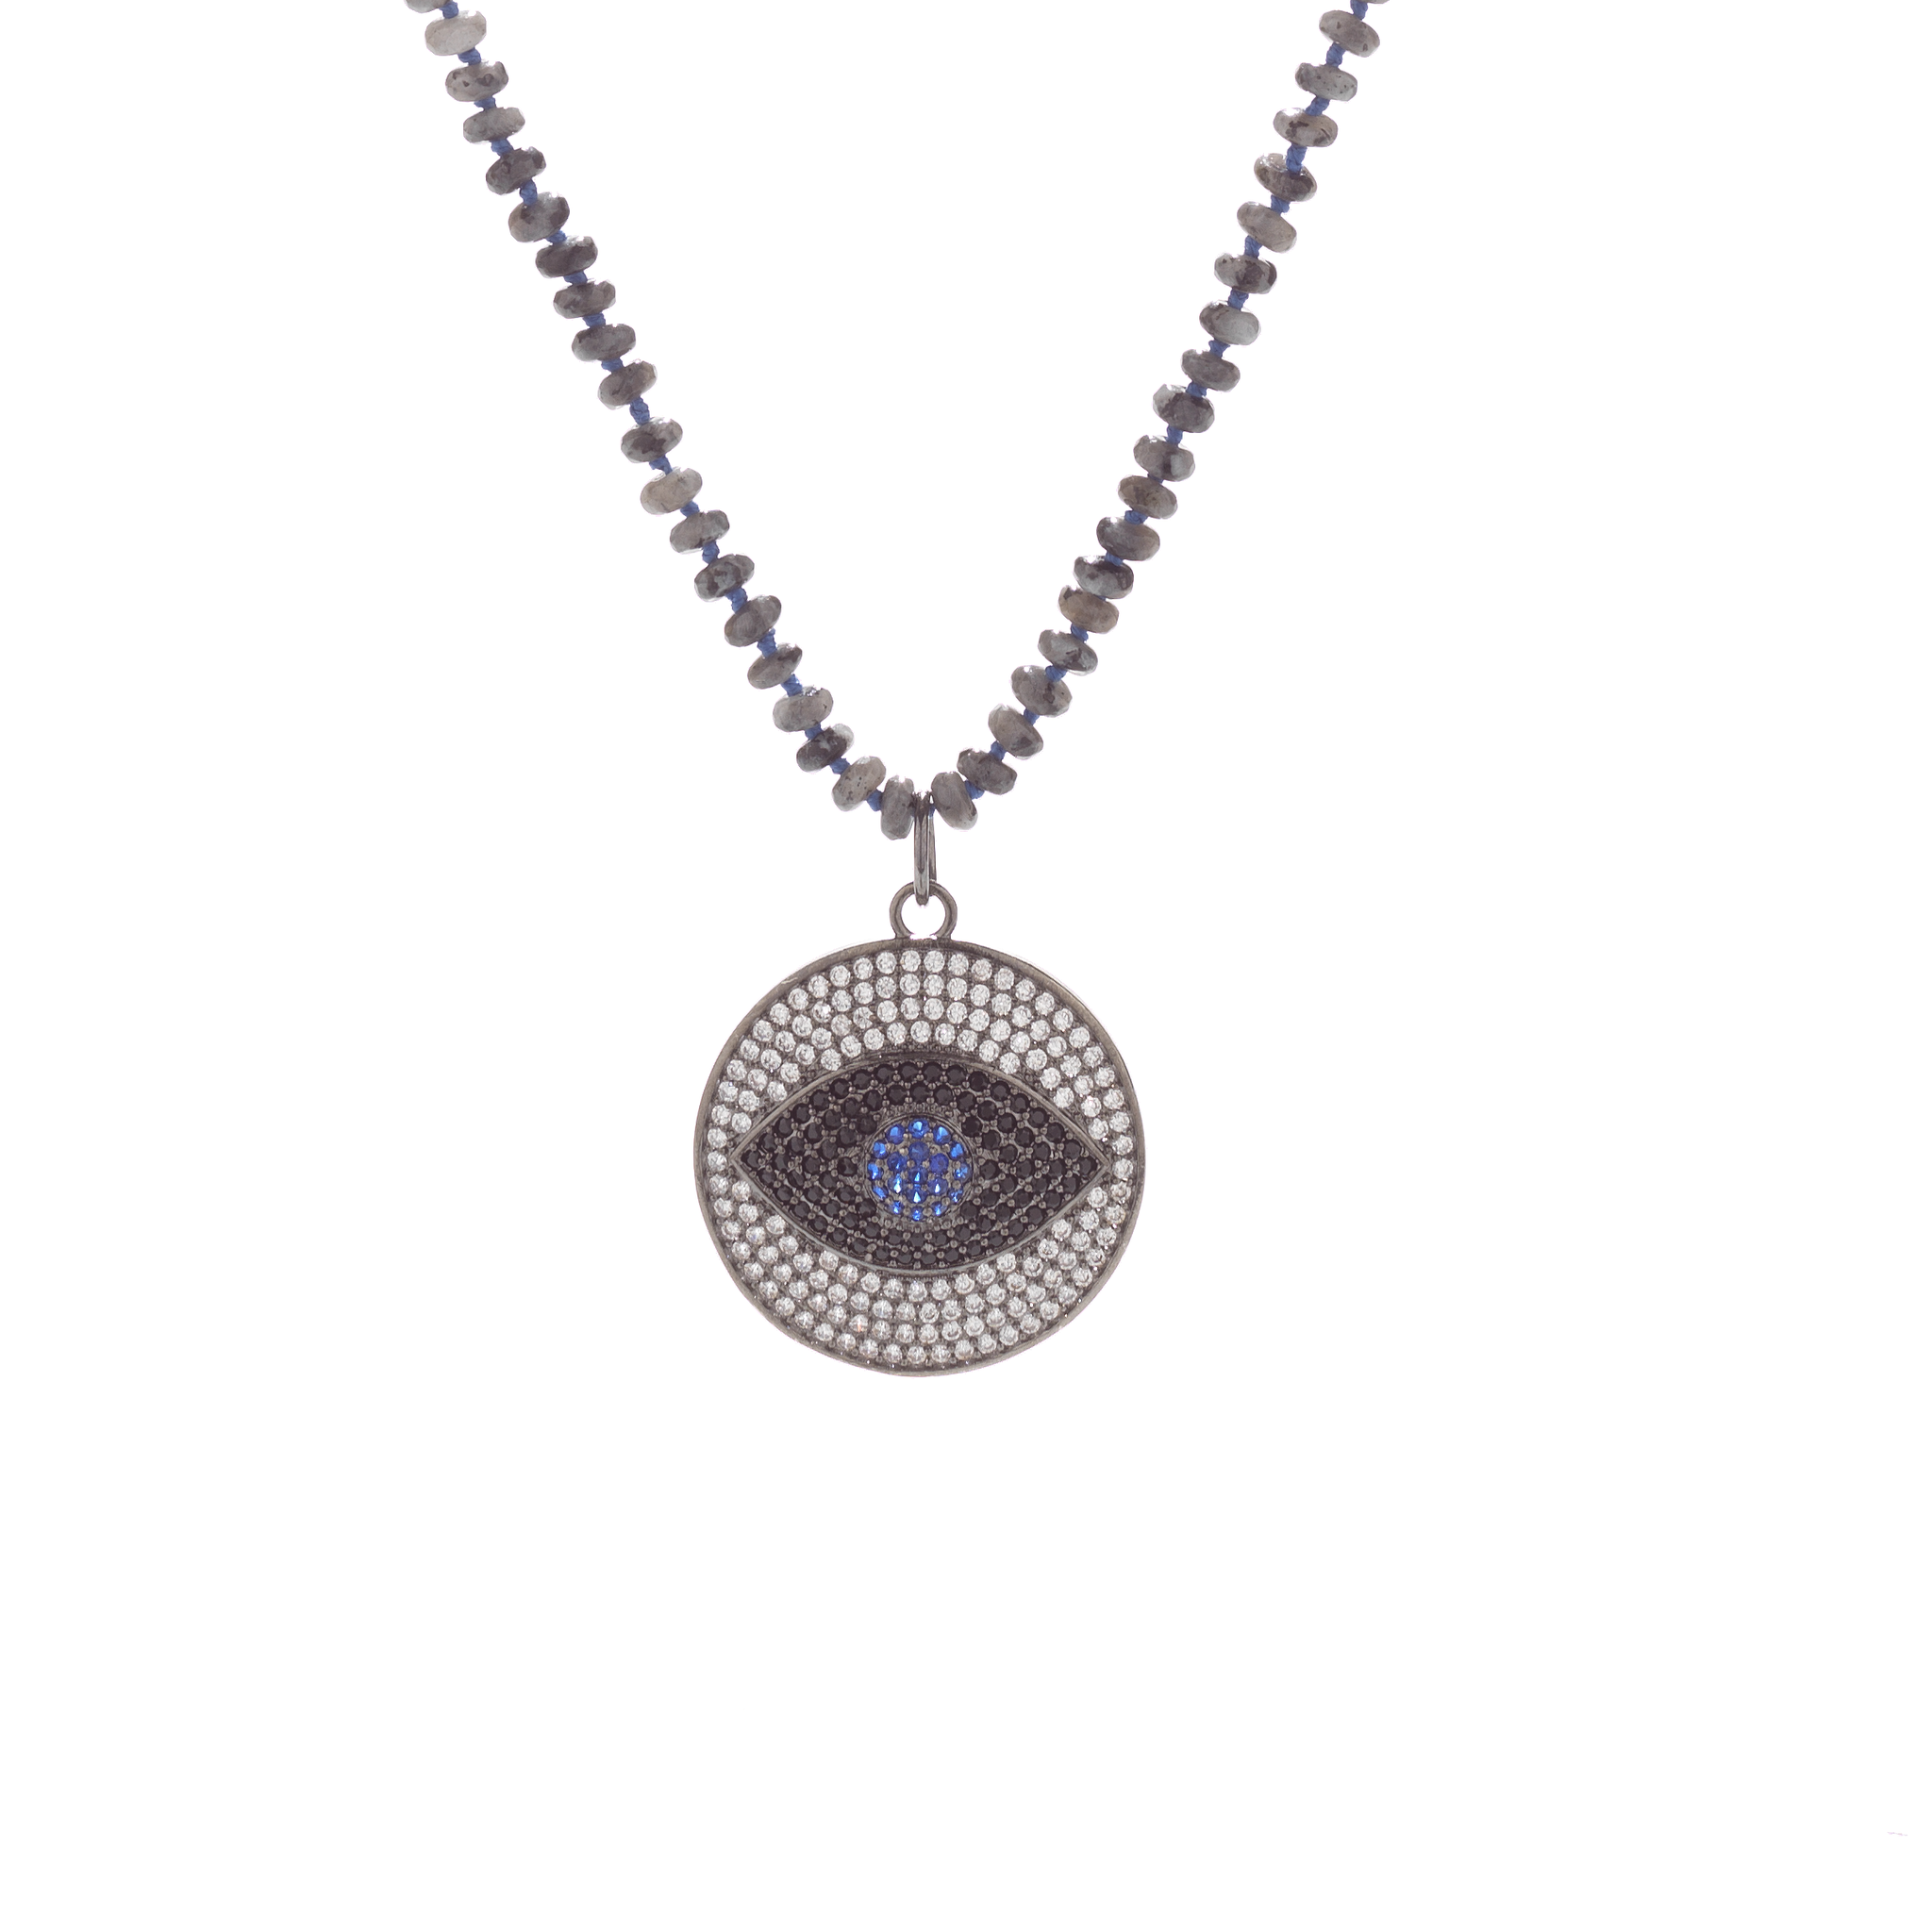 paris necklace en pendant medallion apac givenchy